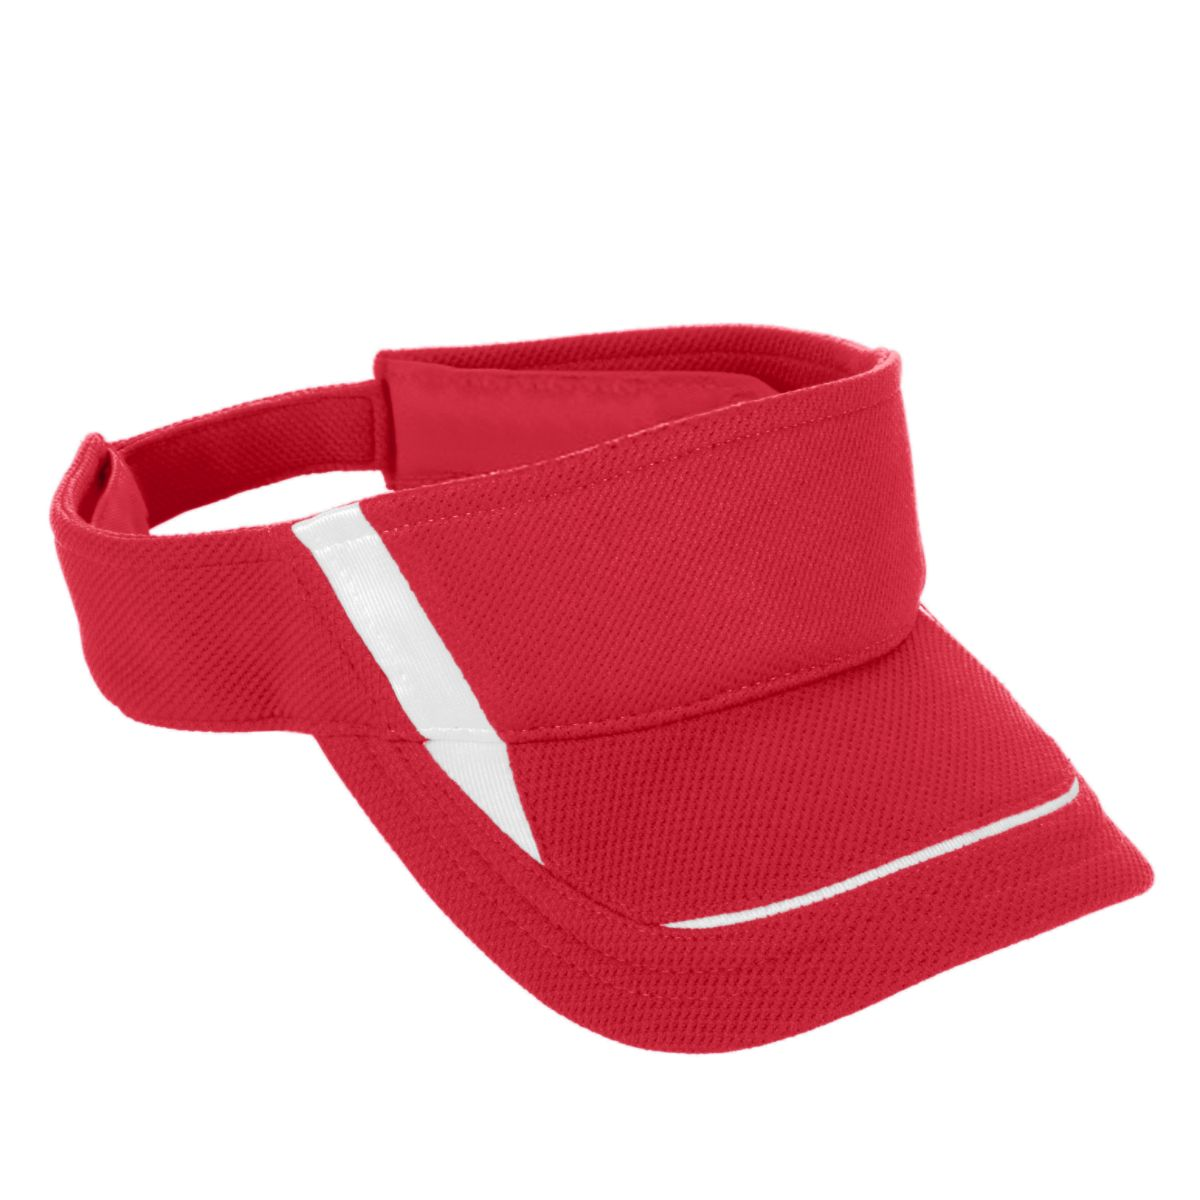 6276 Adjustable Wicking Mesh Edge Visor - Youth RED/WHITE OS